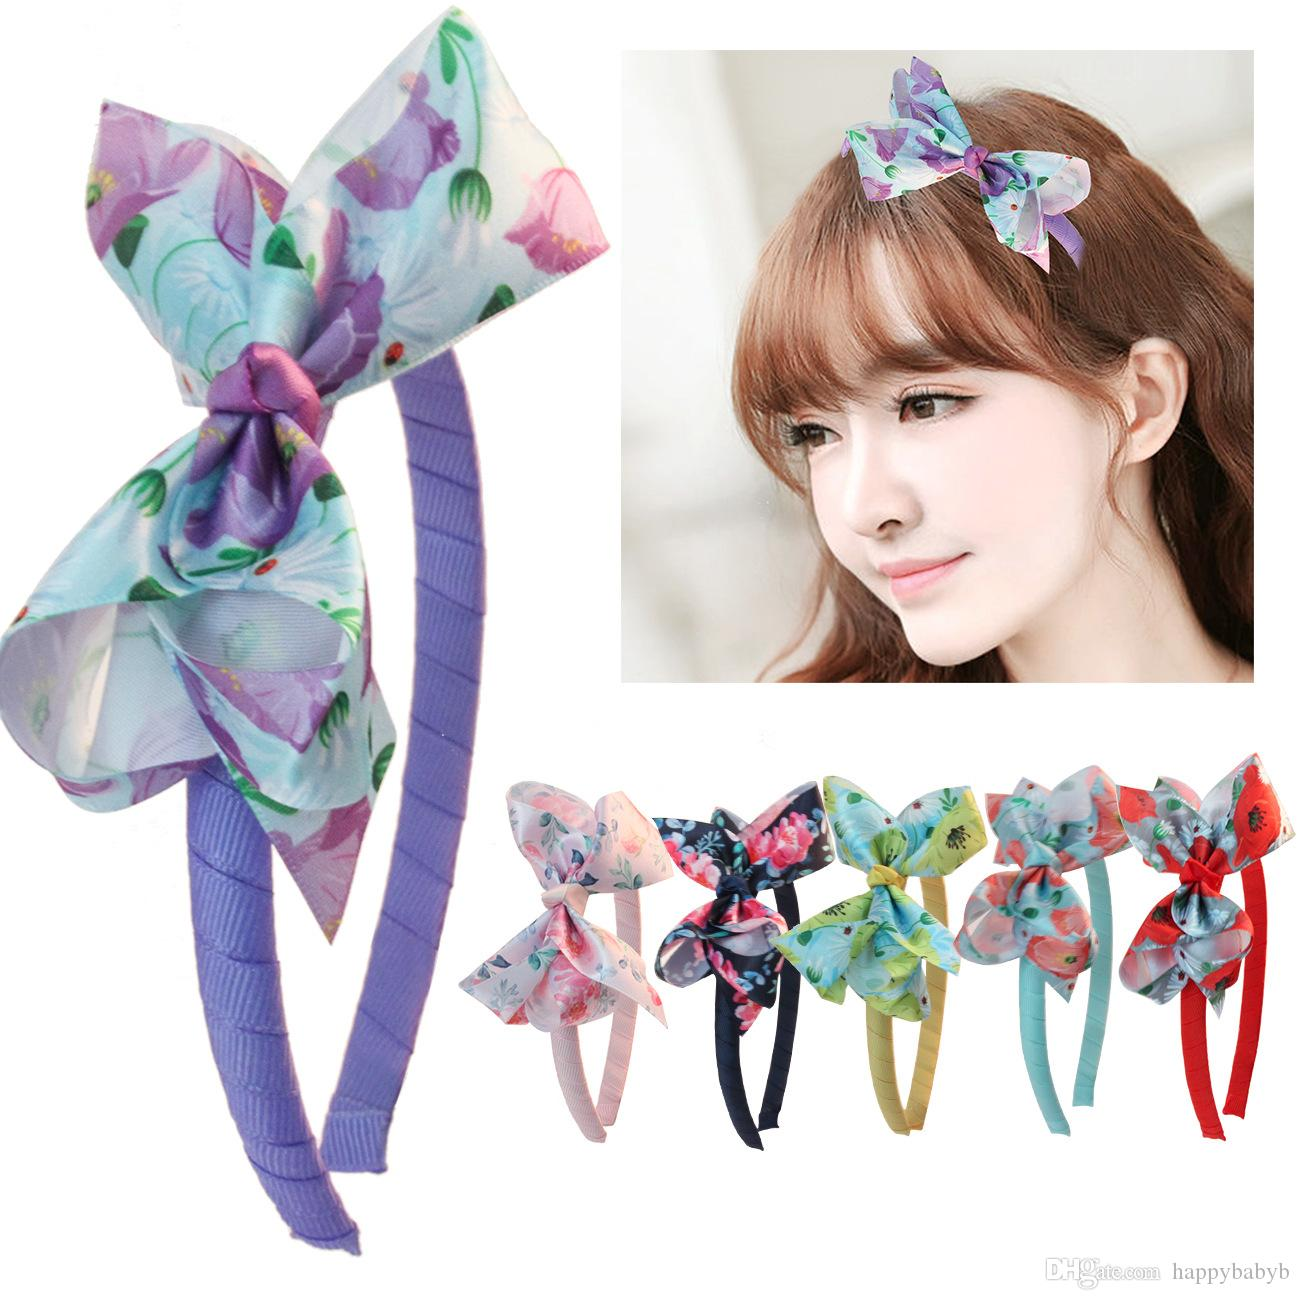 2019 New Wholesale Kids Ribbon Bow Knot Hair Hoop Flower Hairbands Plastic Head bands Hair stick Hair Accessories for Girls